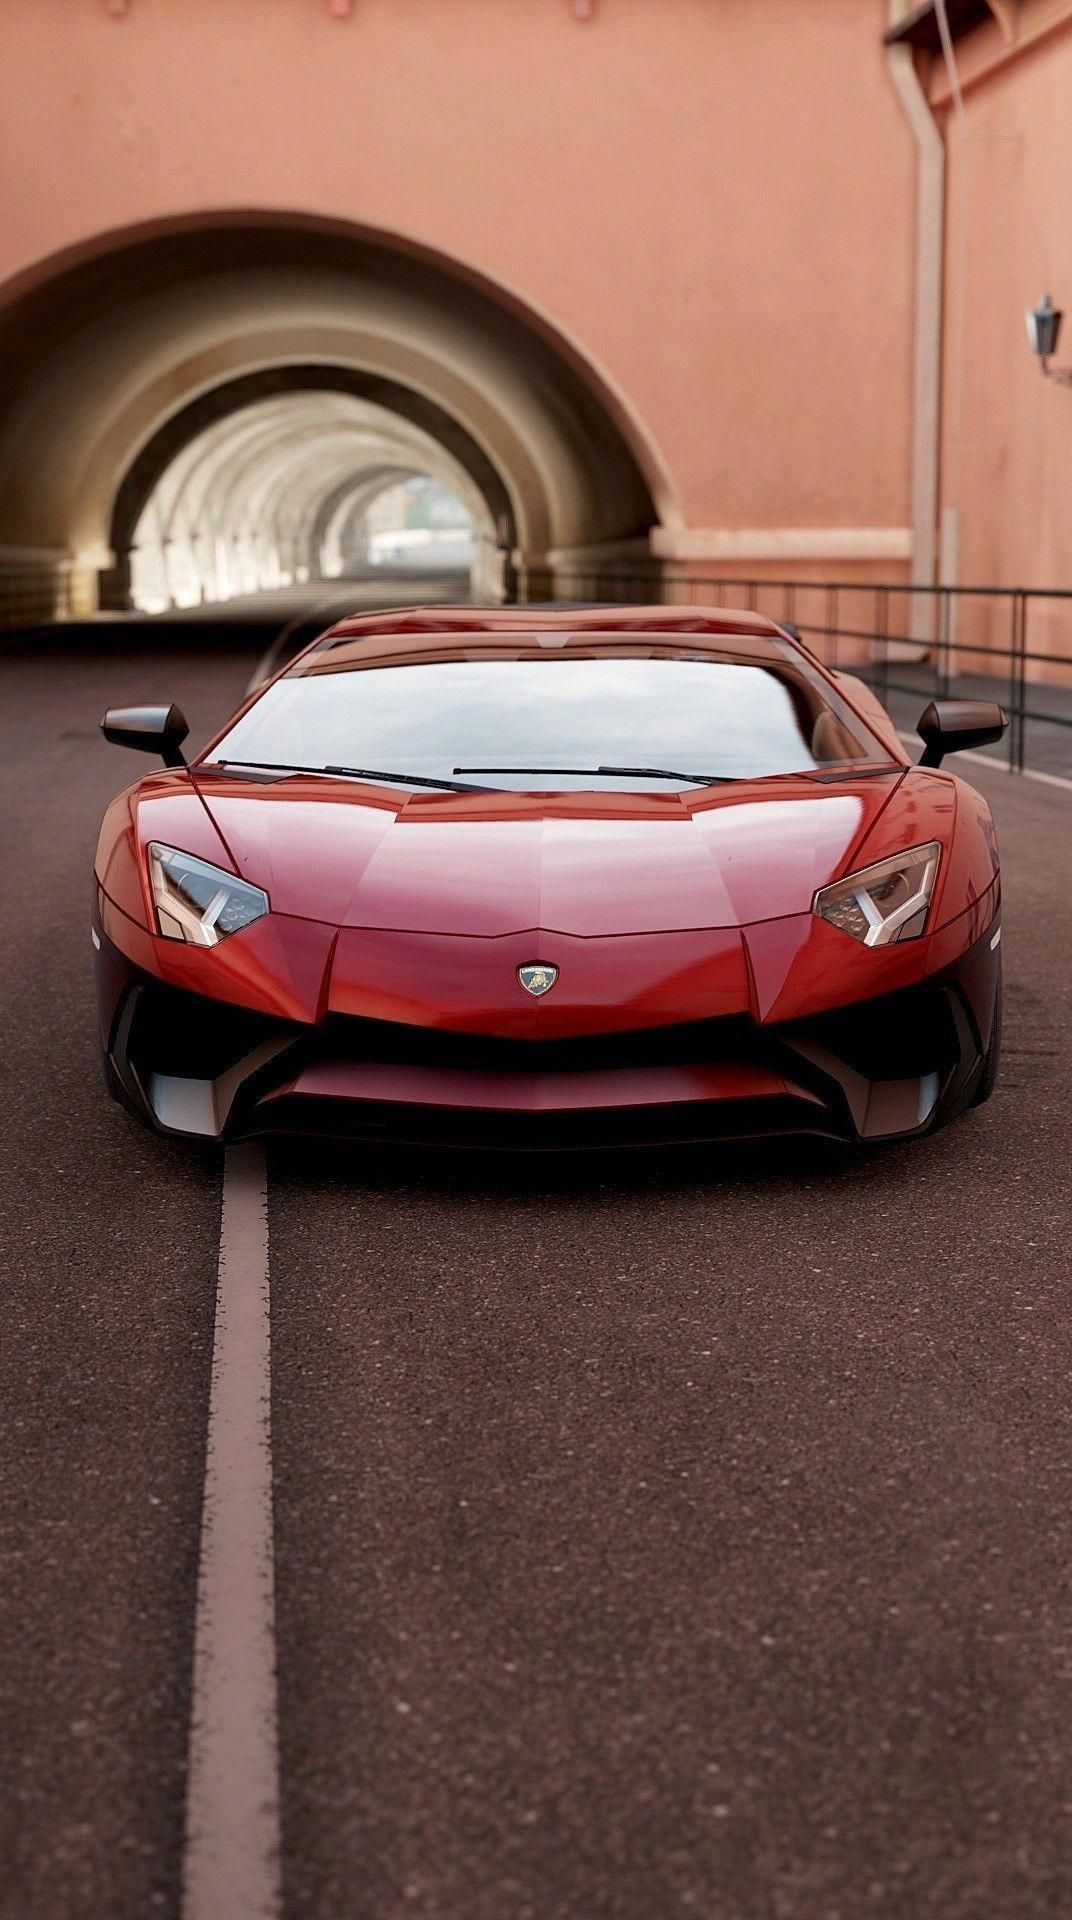 Sports Cars That Start With M Luxury And Expensive Cars - HD 1072×1920